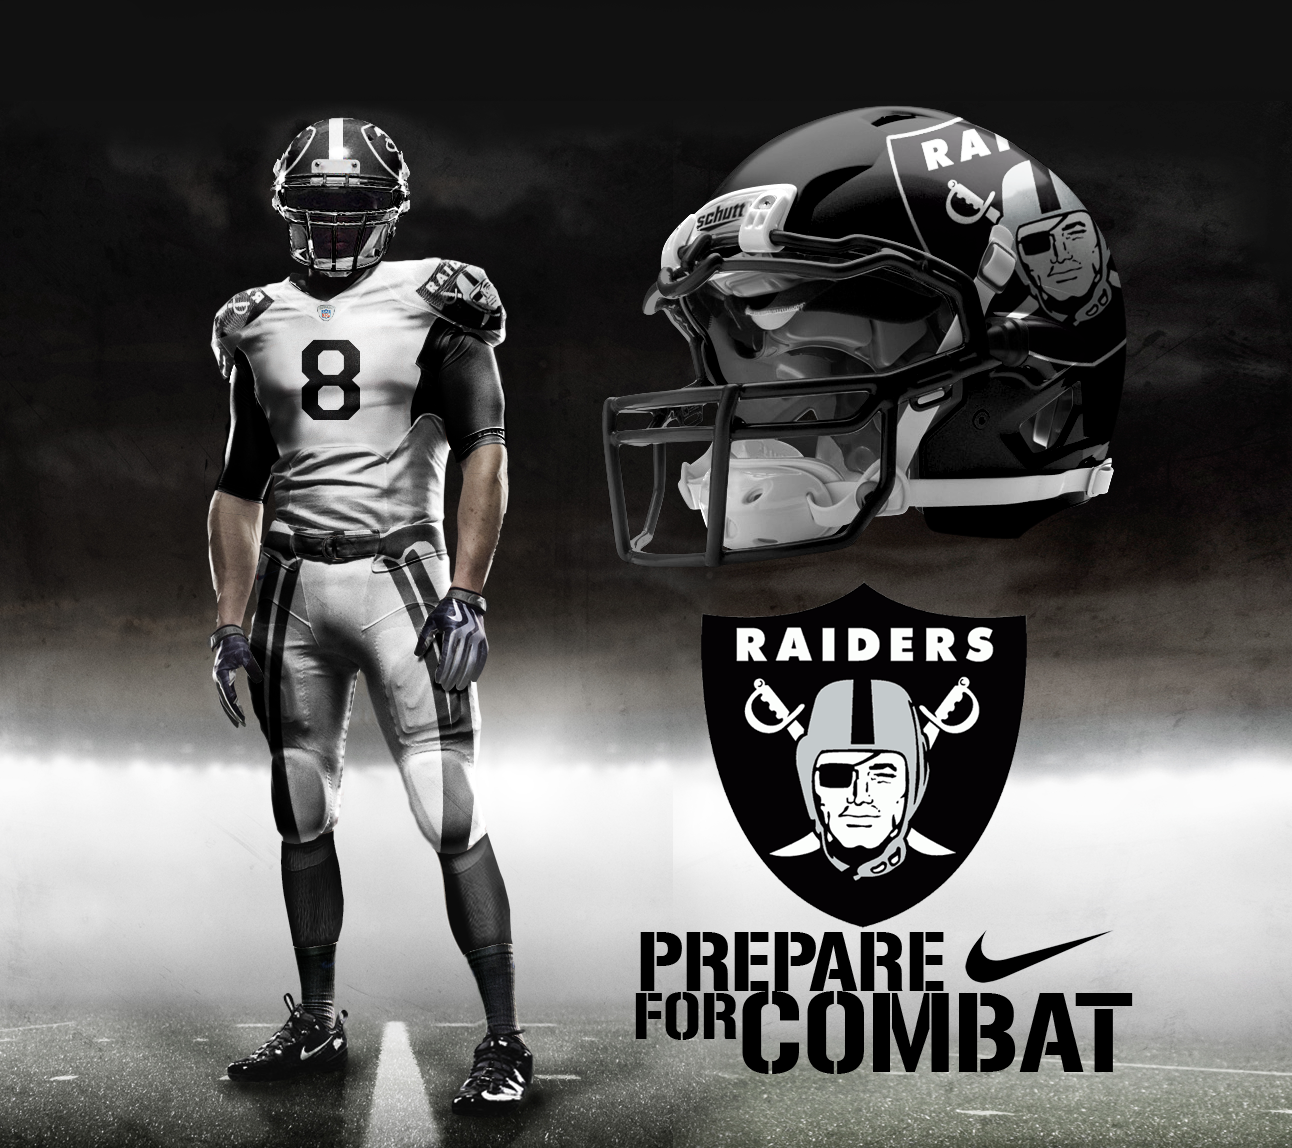 Awesome Unofficial Oakland Raiders Prototype Jersey. Can't